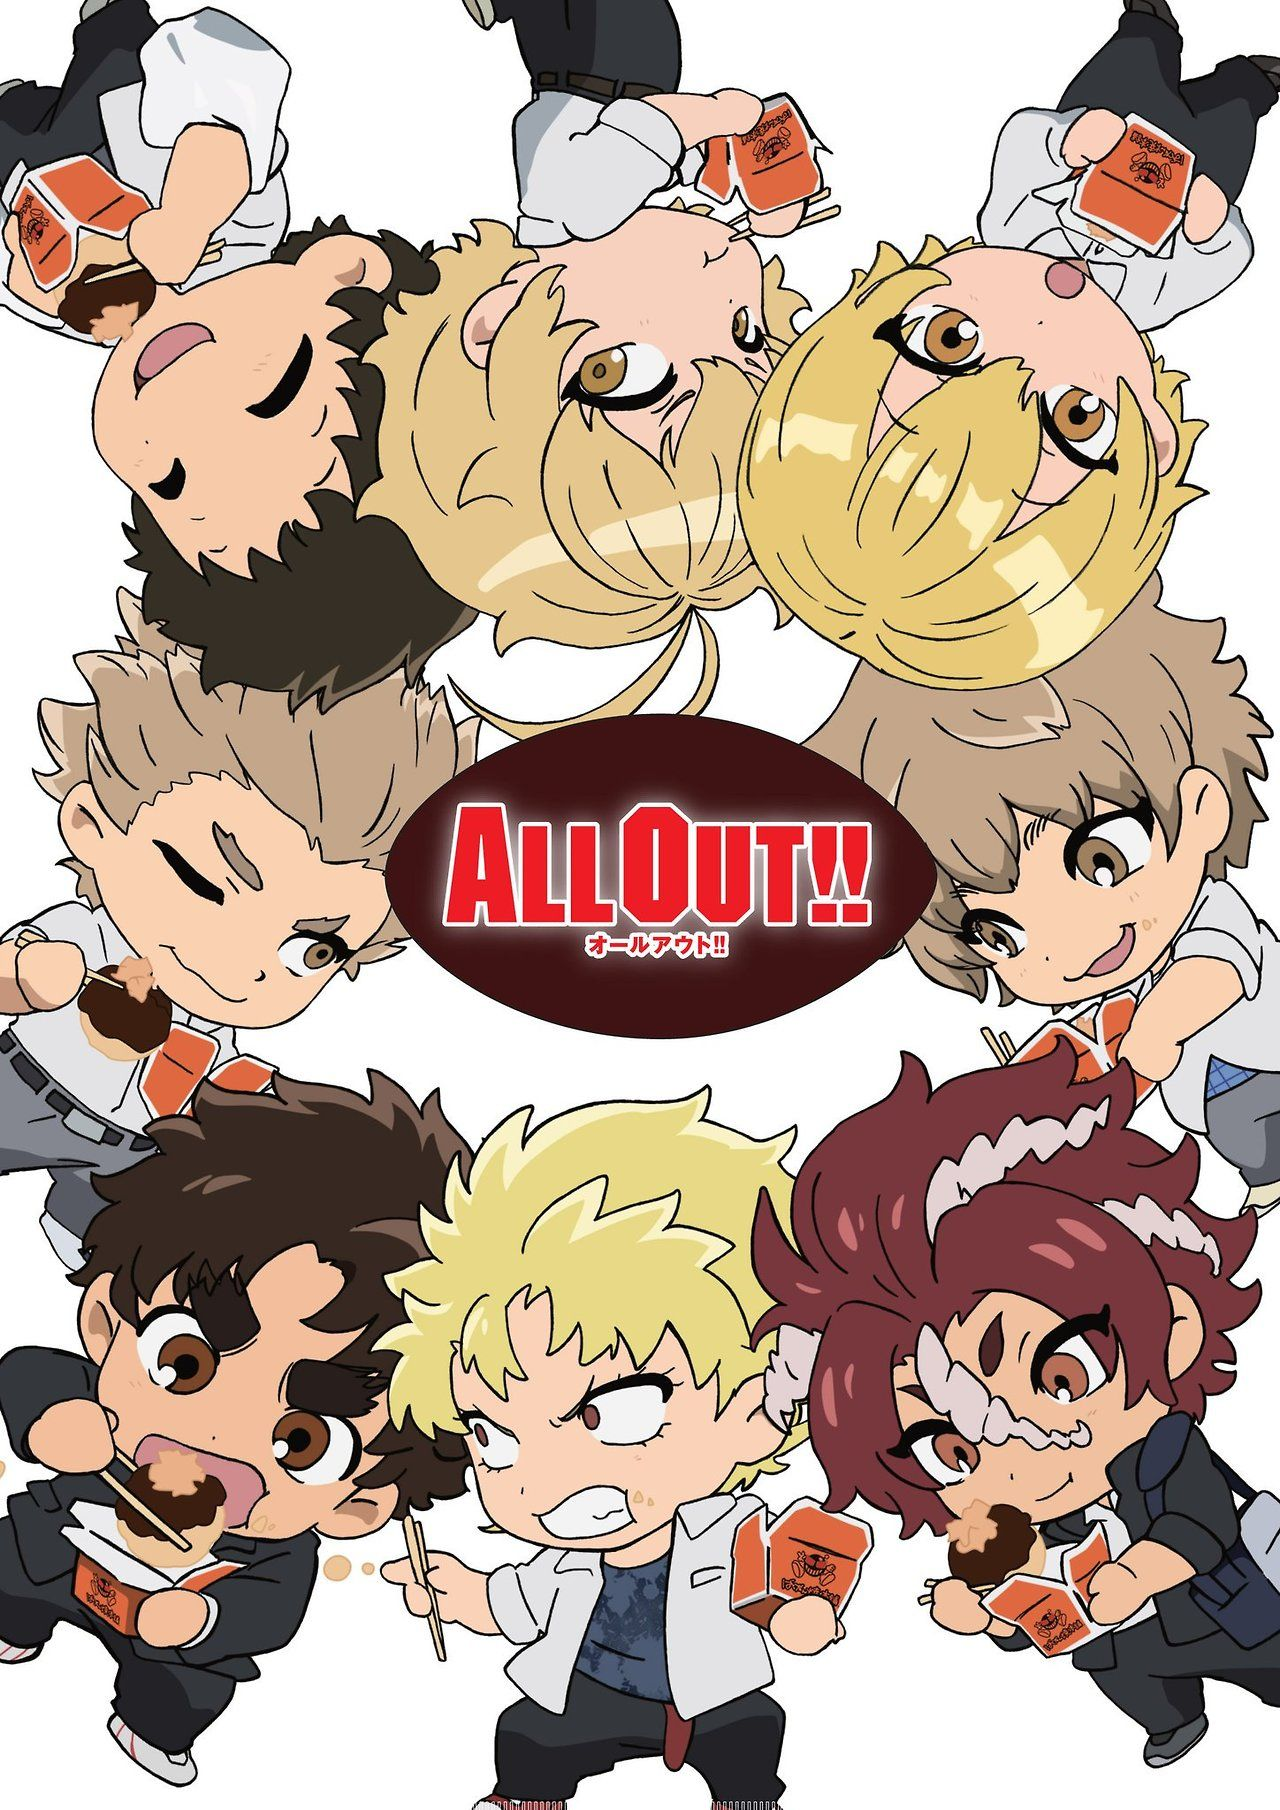 All Out Anime Tumblr Anime Love